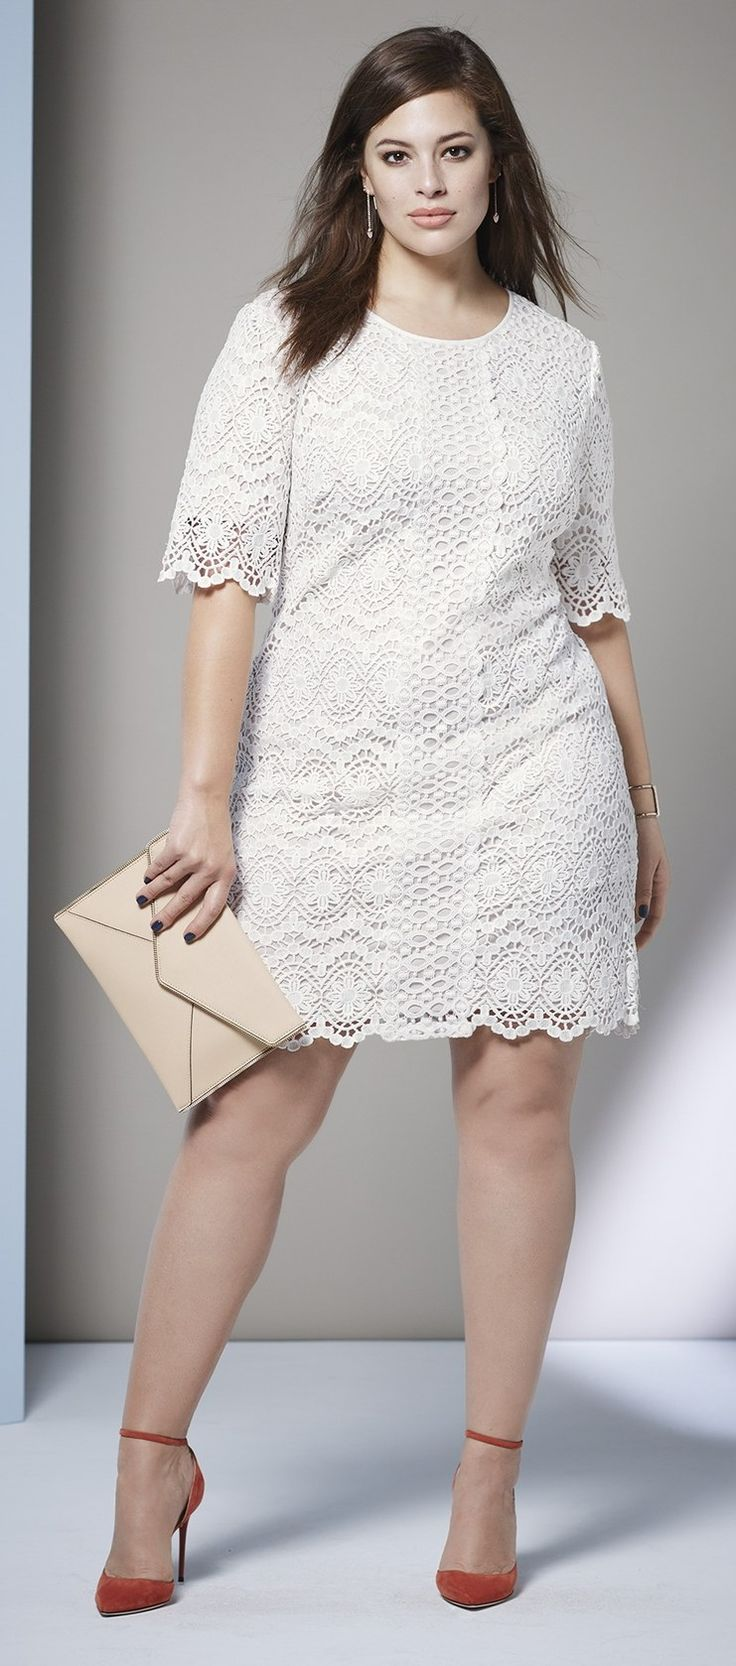 Plus size a line lace shift dress plus size fashion for Plus size shapewear for wedding dresses